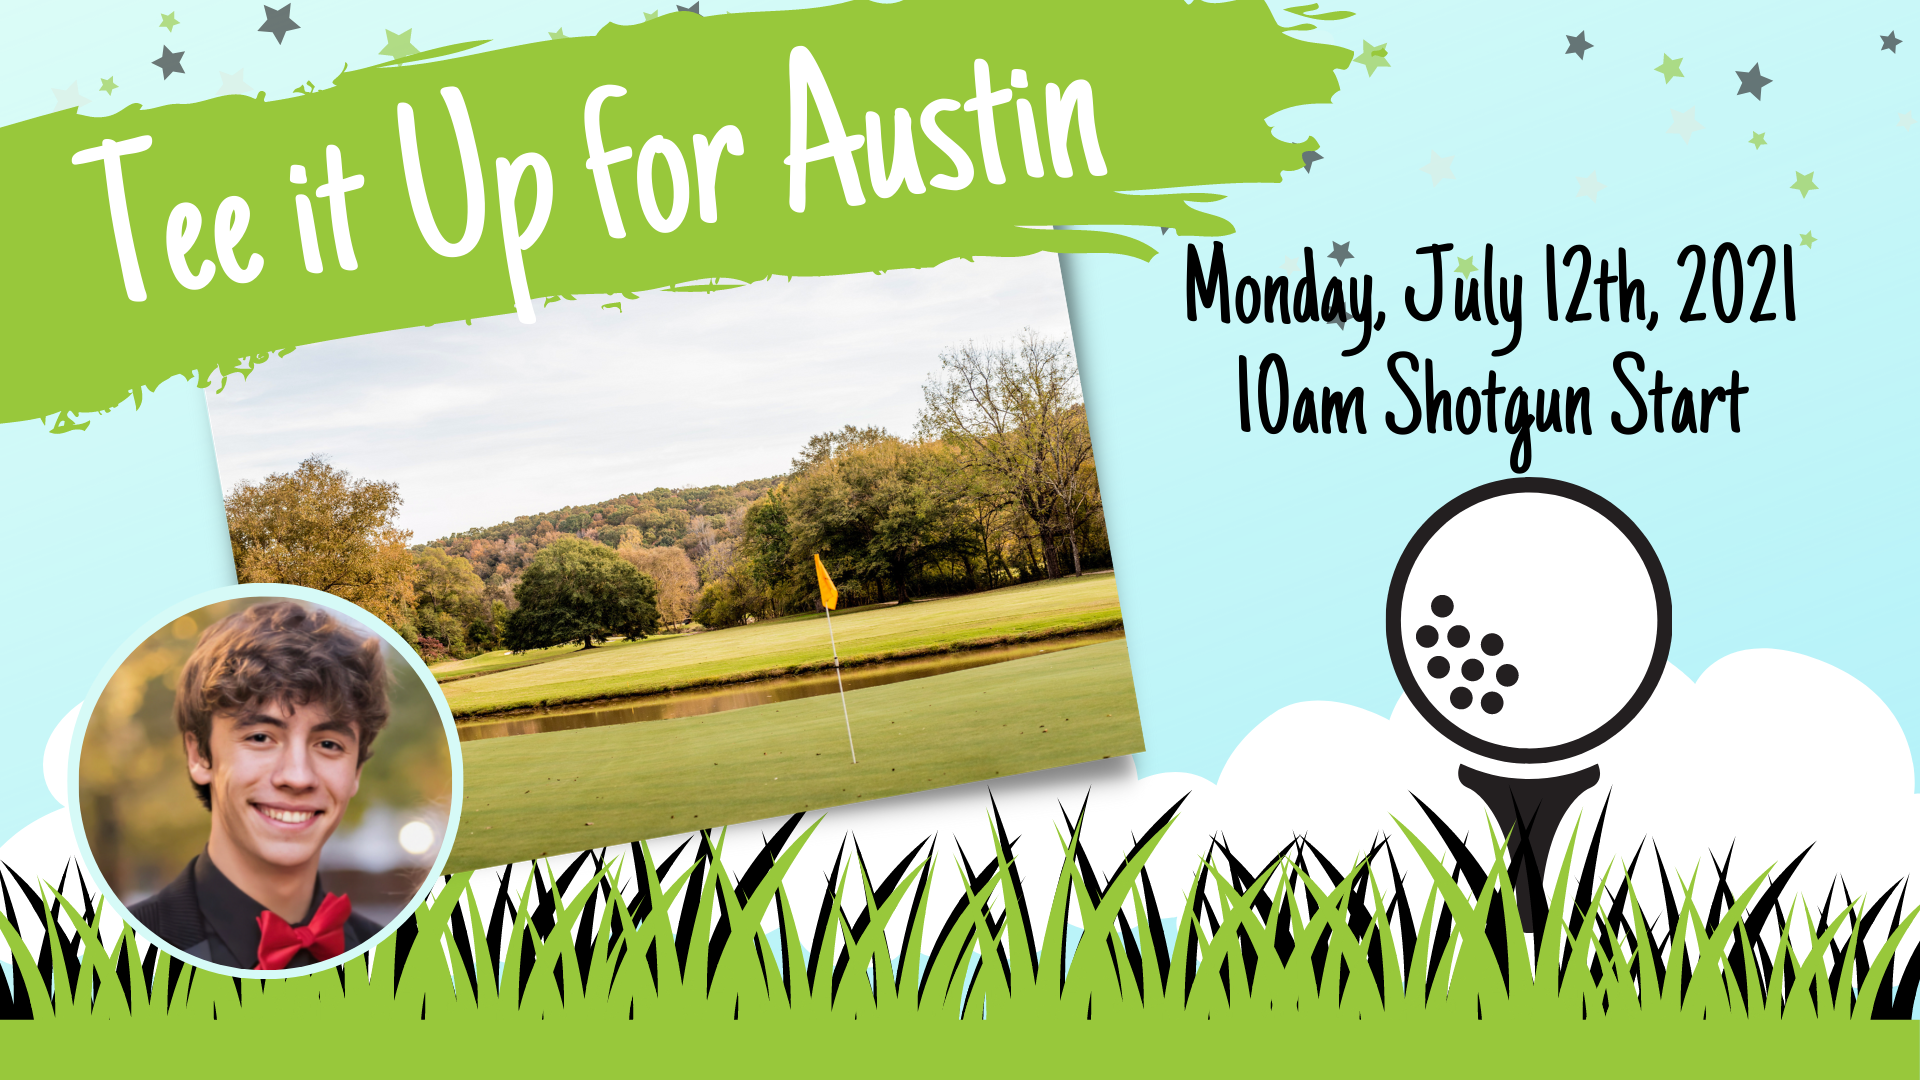 Tee it Up for Austin ⛳️